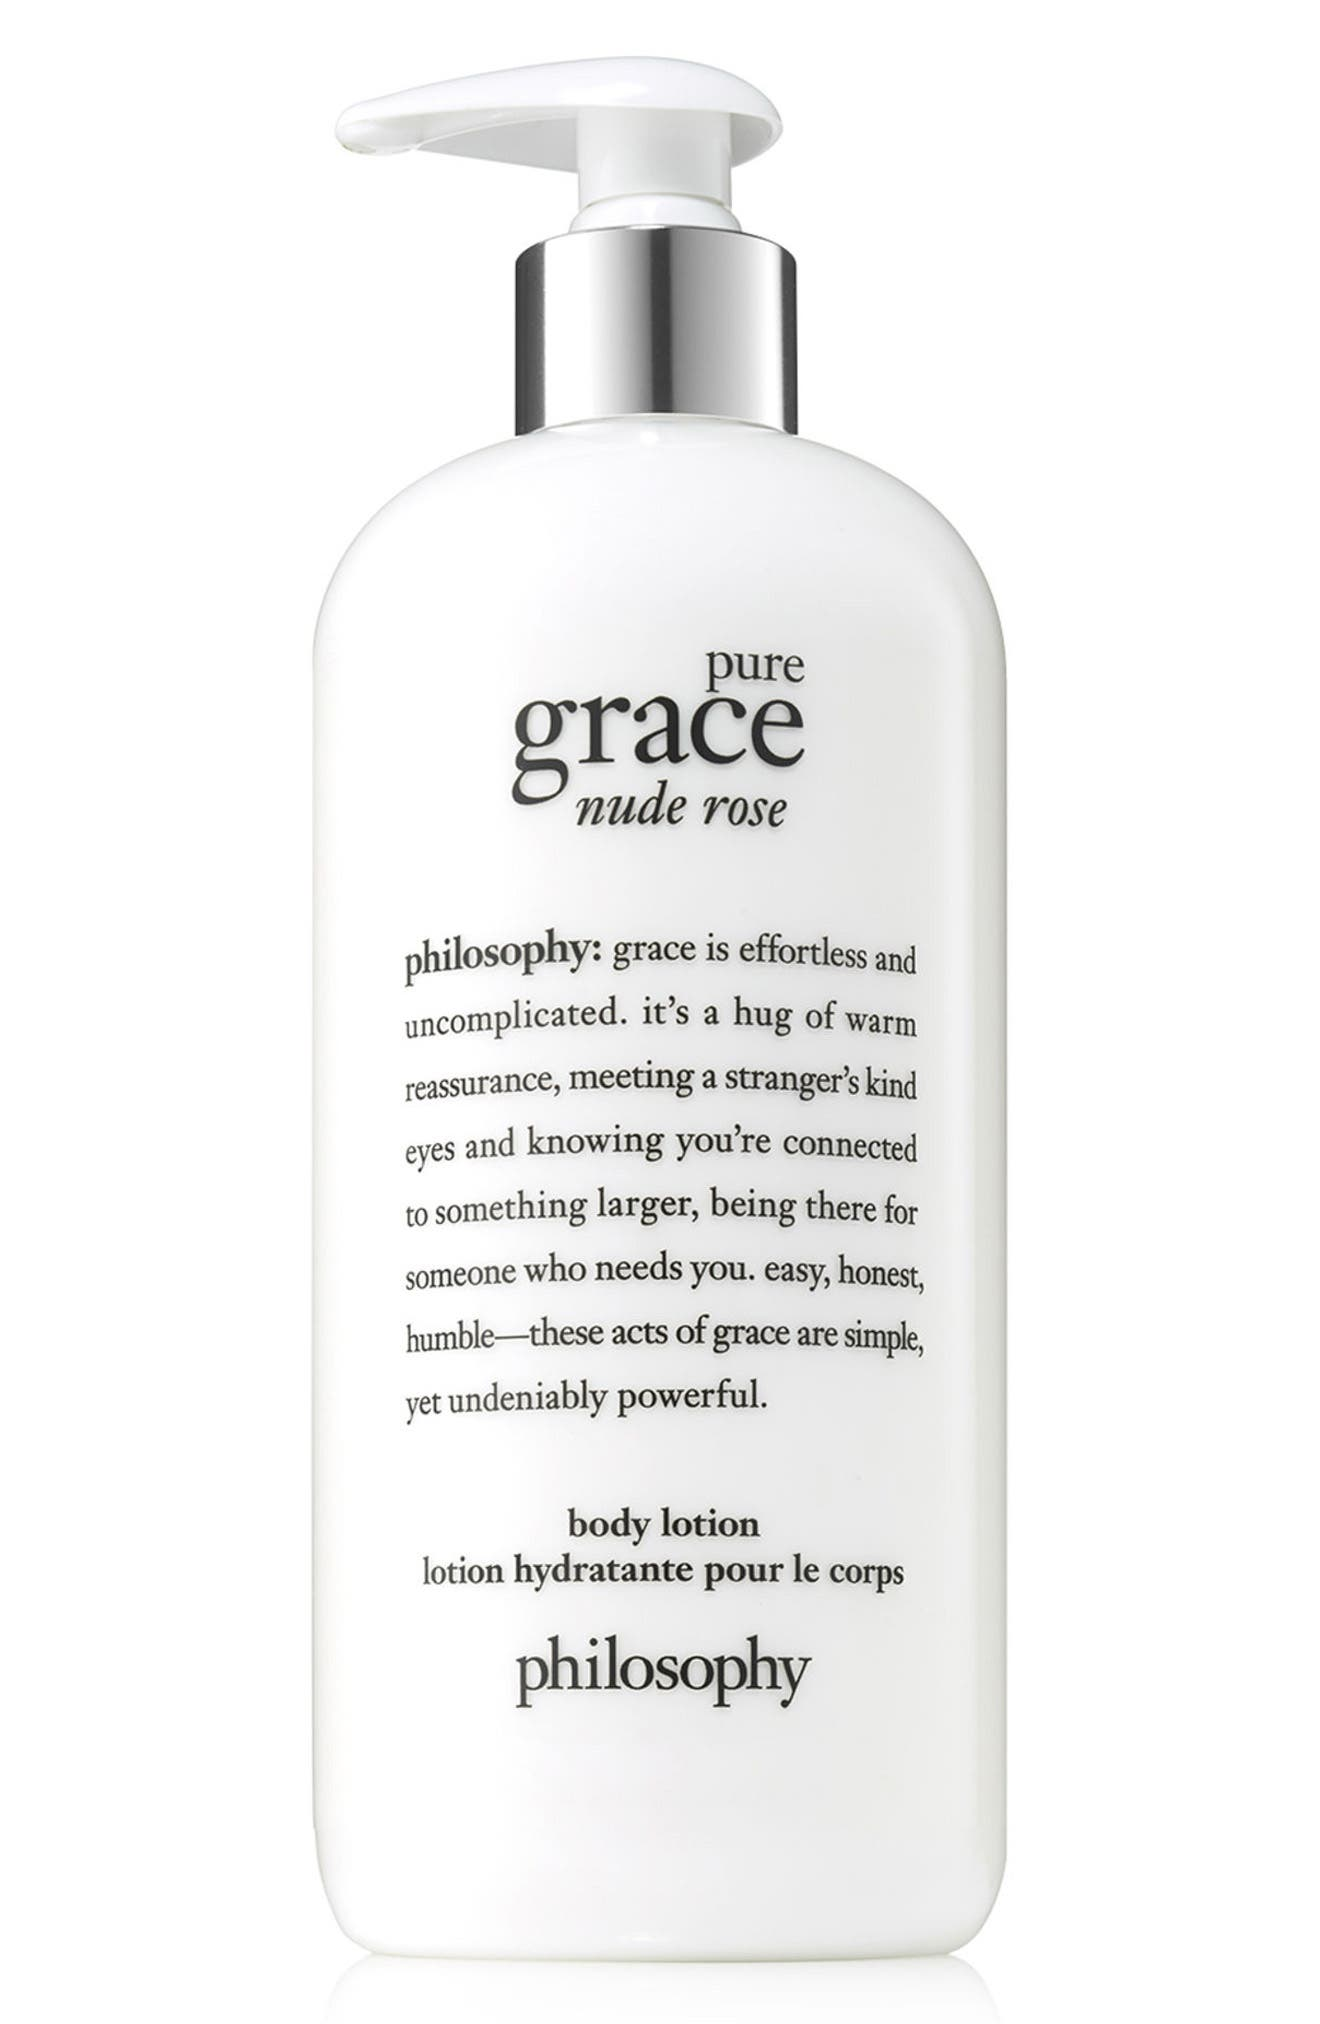 PHILOSOPHY pure grace nude rose body lotion, Main, color, NO COLOR